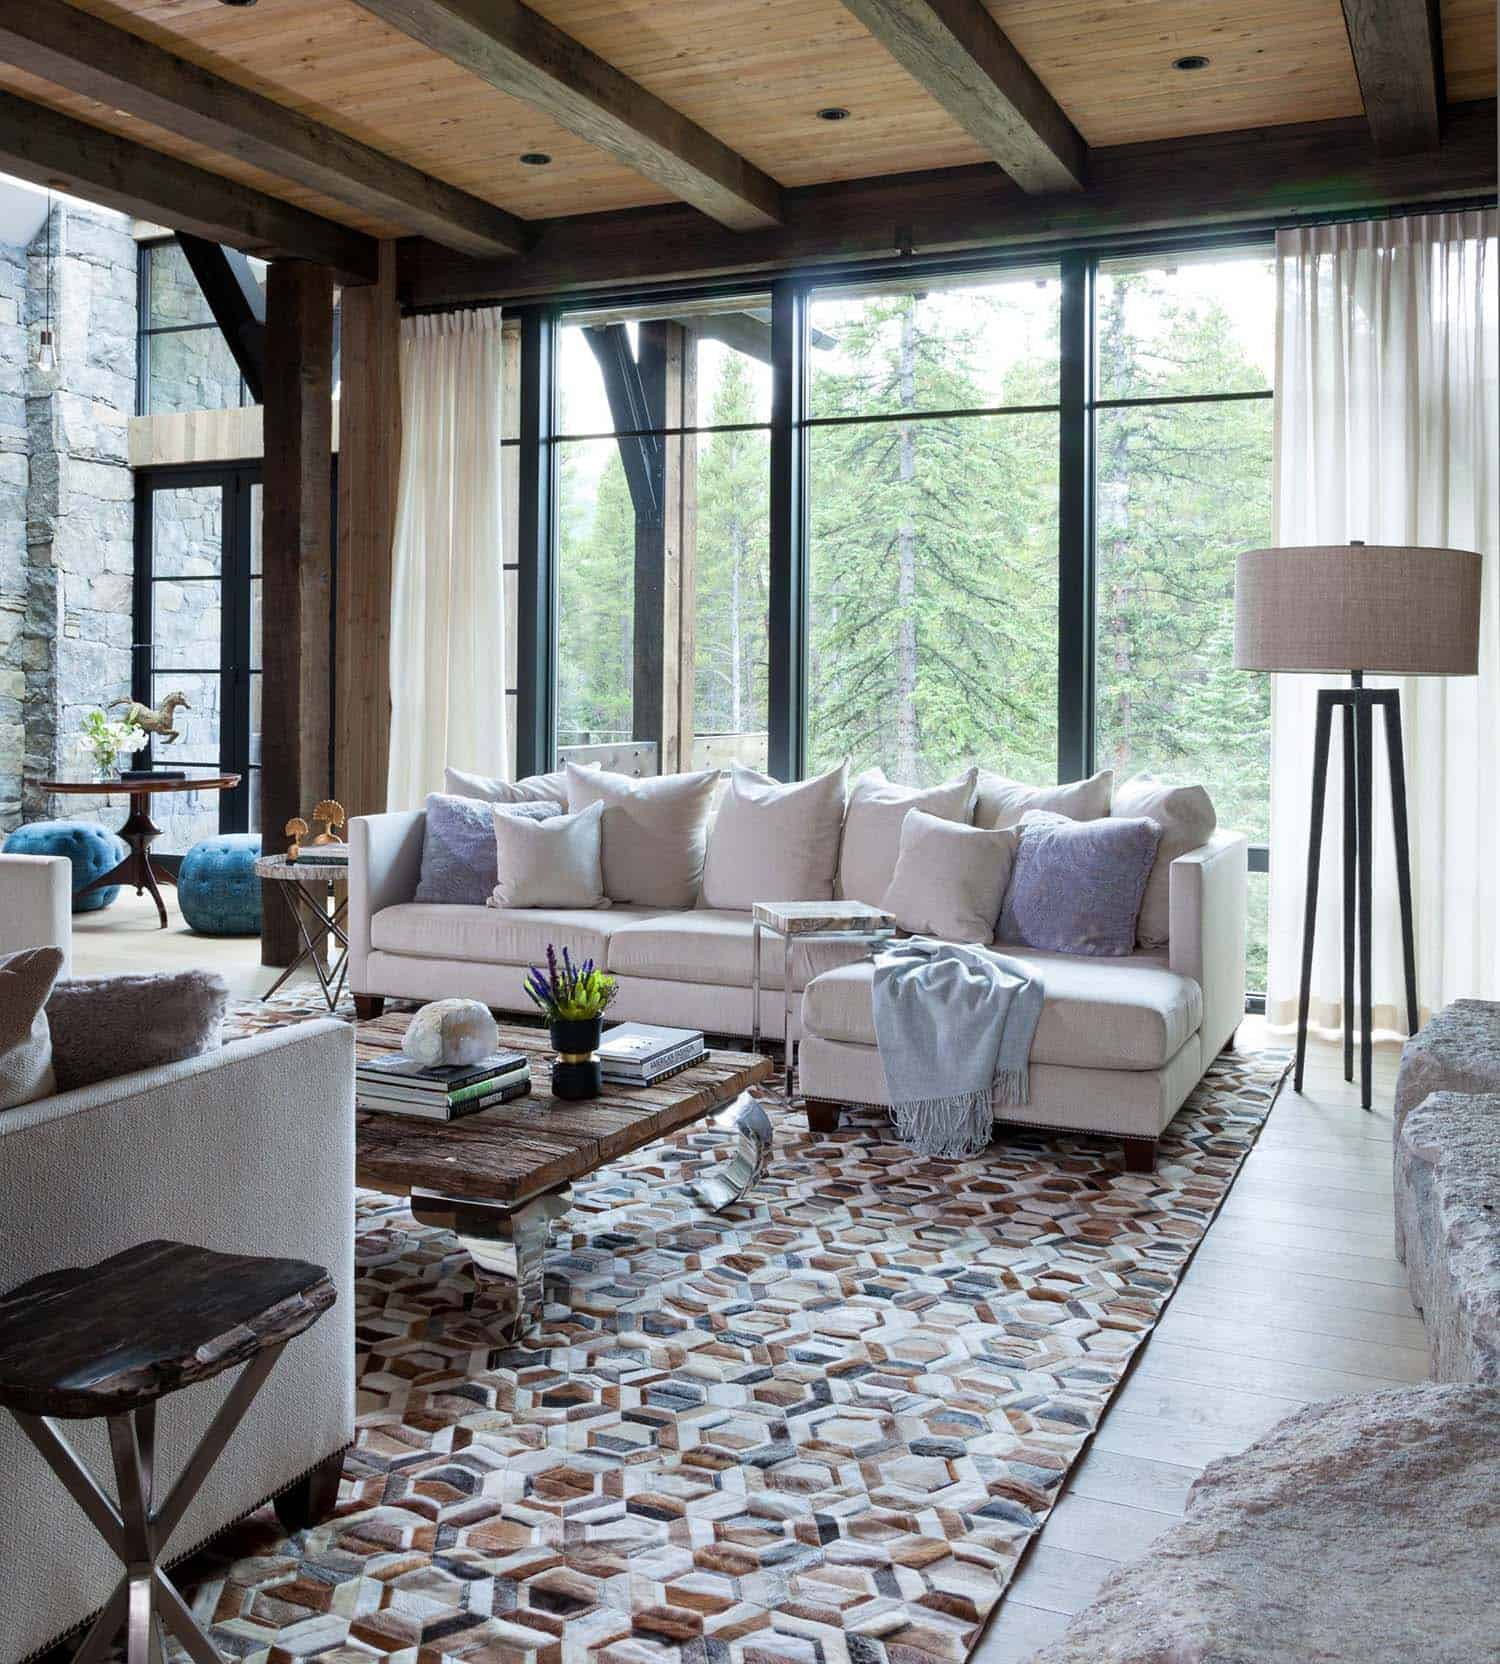 Contemporary Mountain Chalet-Andrea Schumacher Interiors-03-1 Kindesign